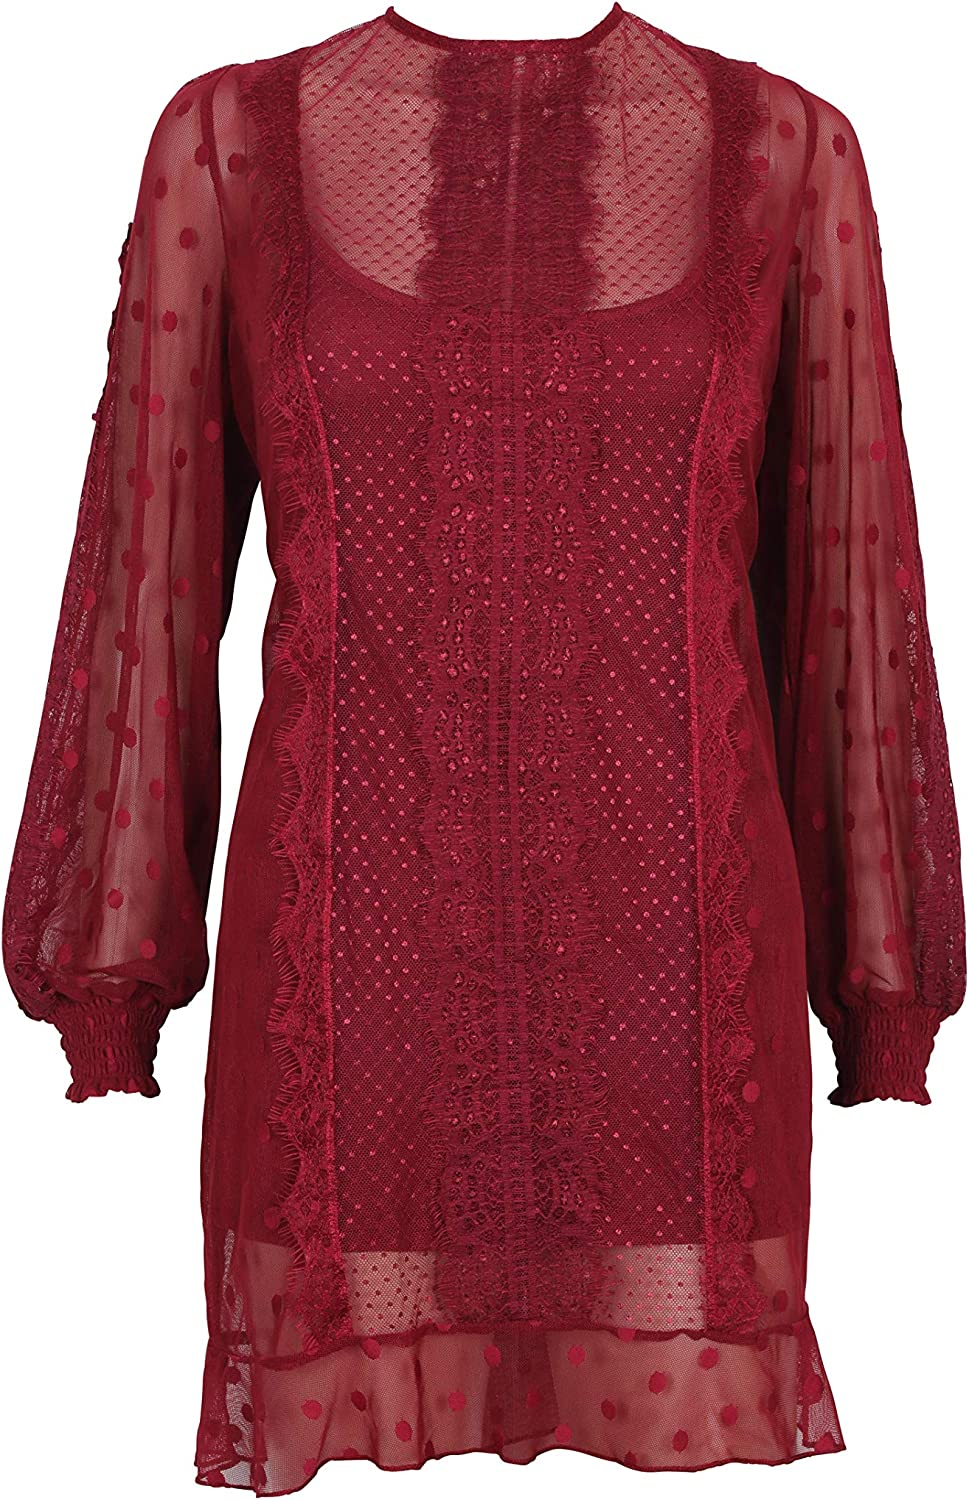 MINKPINK Women's Layla Lace Mini Dress, Burgandy